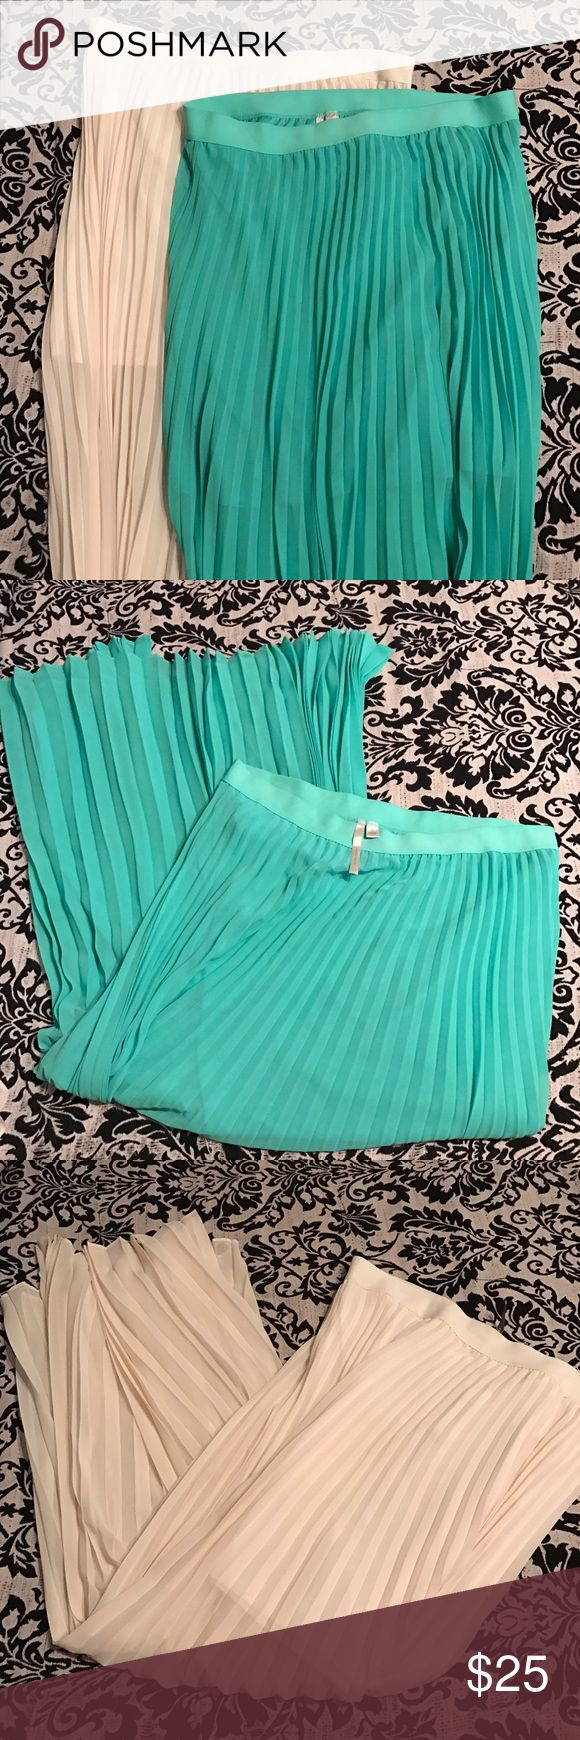 Mint green and ivory Lauren Conrad maxi skirt. XL Lauren Conrad maxi skirts. 2 maxi skirts colors mint and ivory. Worn once. Excellent condition. Each skirt about 41 1/2 inches long. LC Lauren Conrad Skirts Maxi